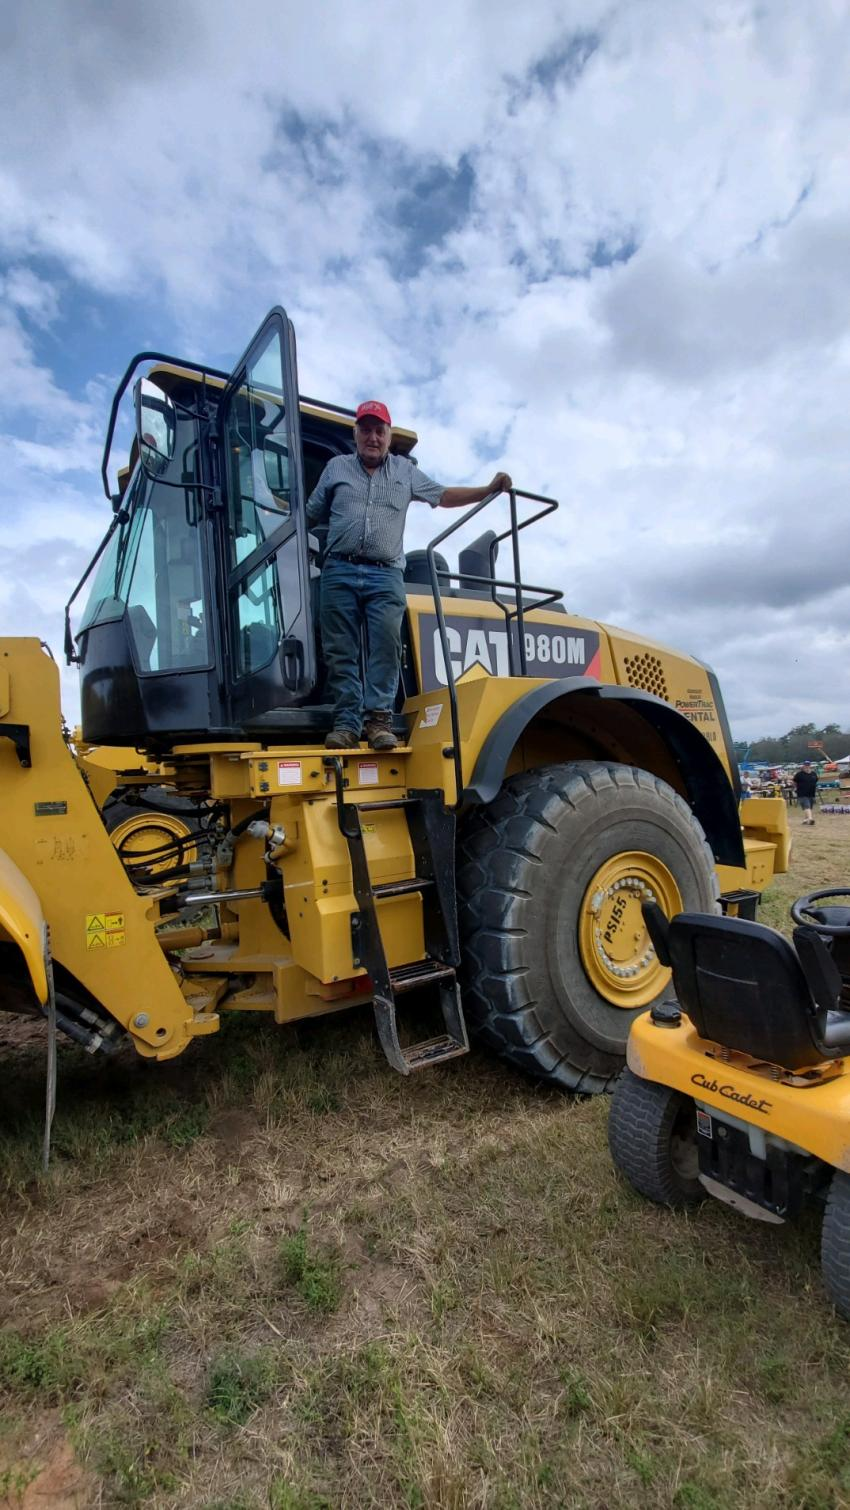 Roger Lottman, of Canajoharie, N.Y., owner of Lottman Excavation, looks over a Cat 980M wheel loader to possibly add to his fleet.